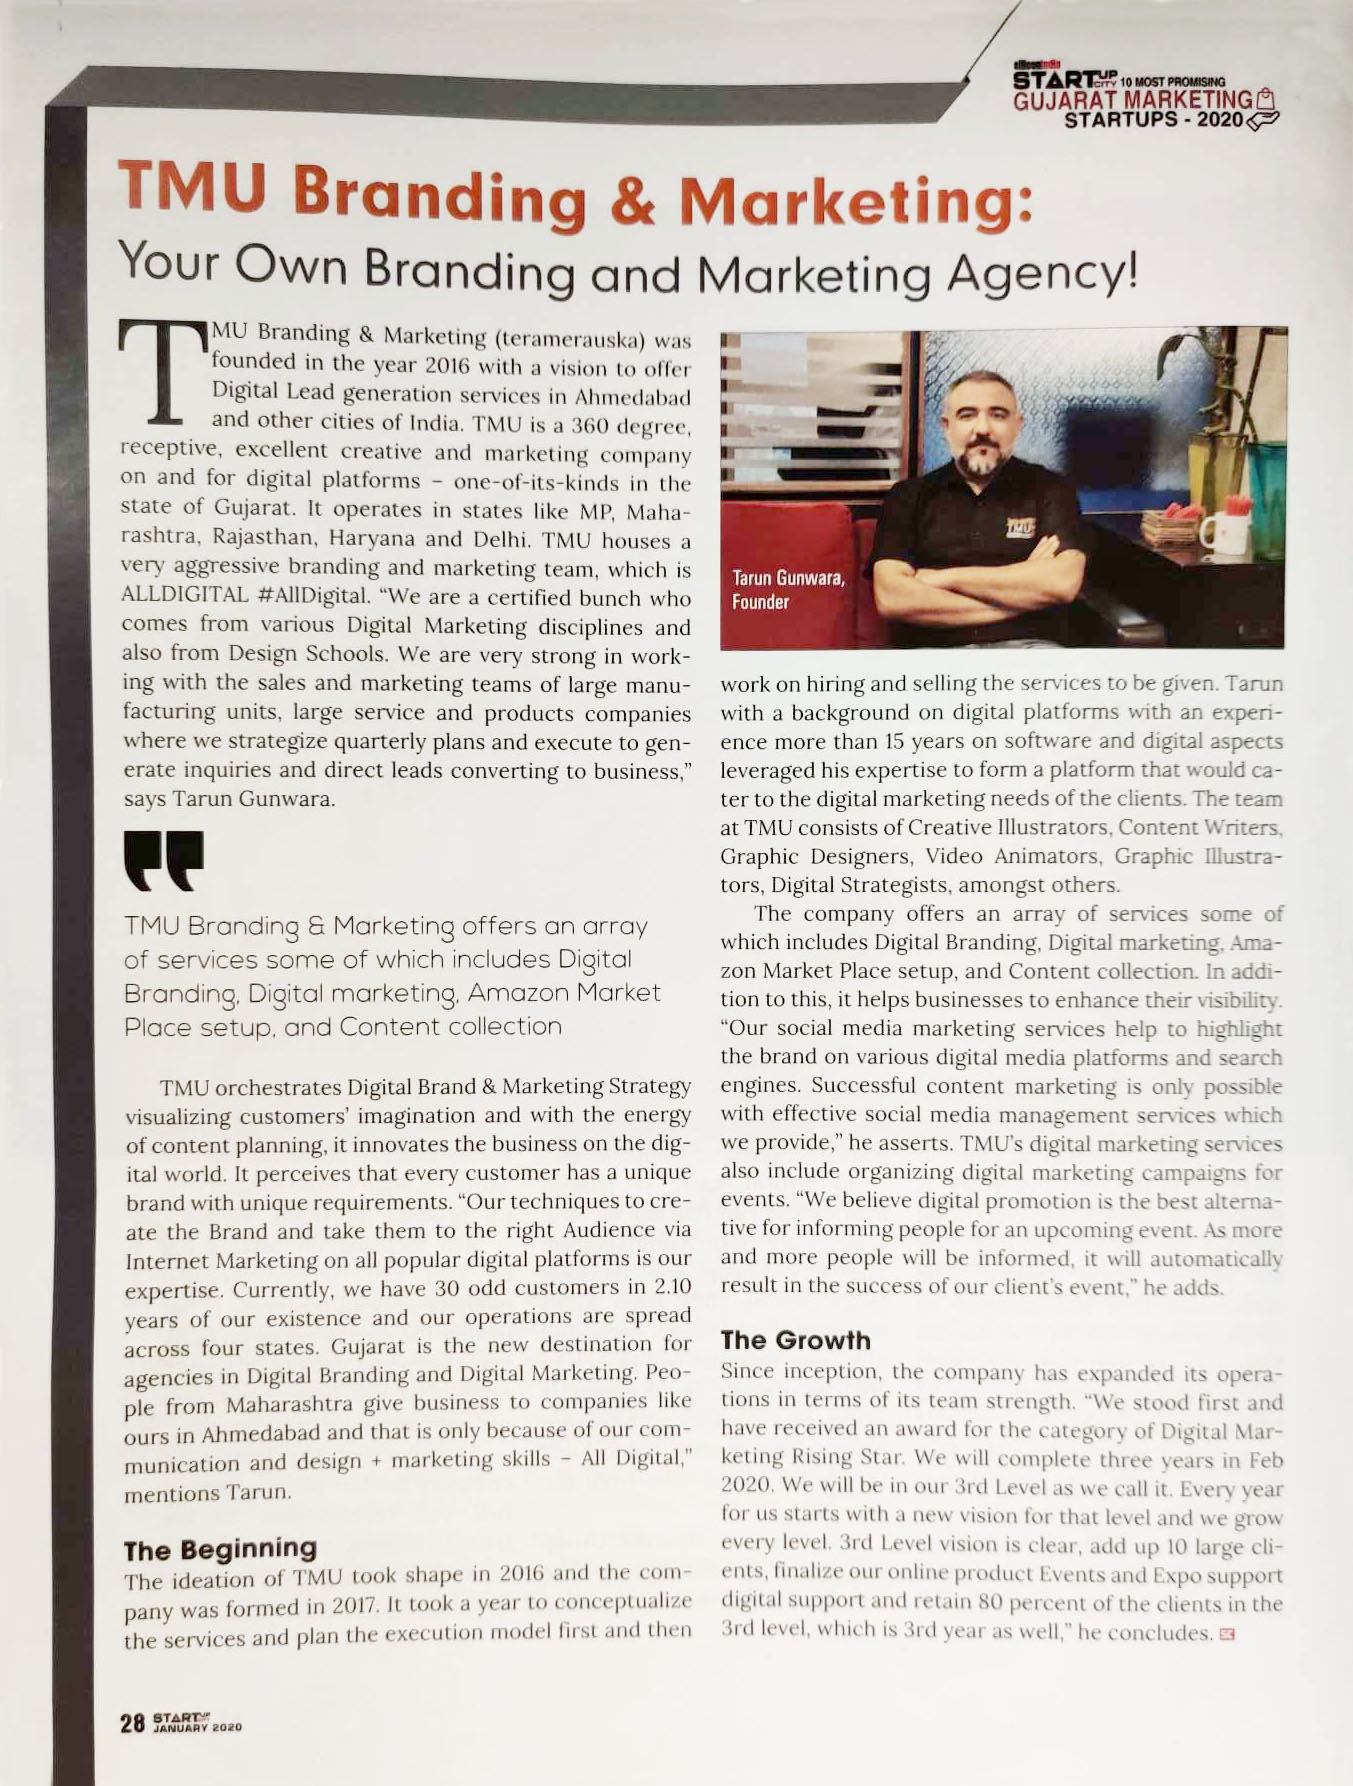 Silicon India TMU Branding & Marketing: Your Own Branding and Marketing Agency!